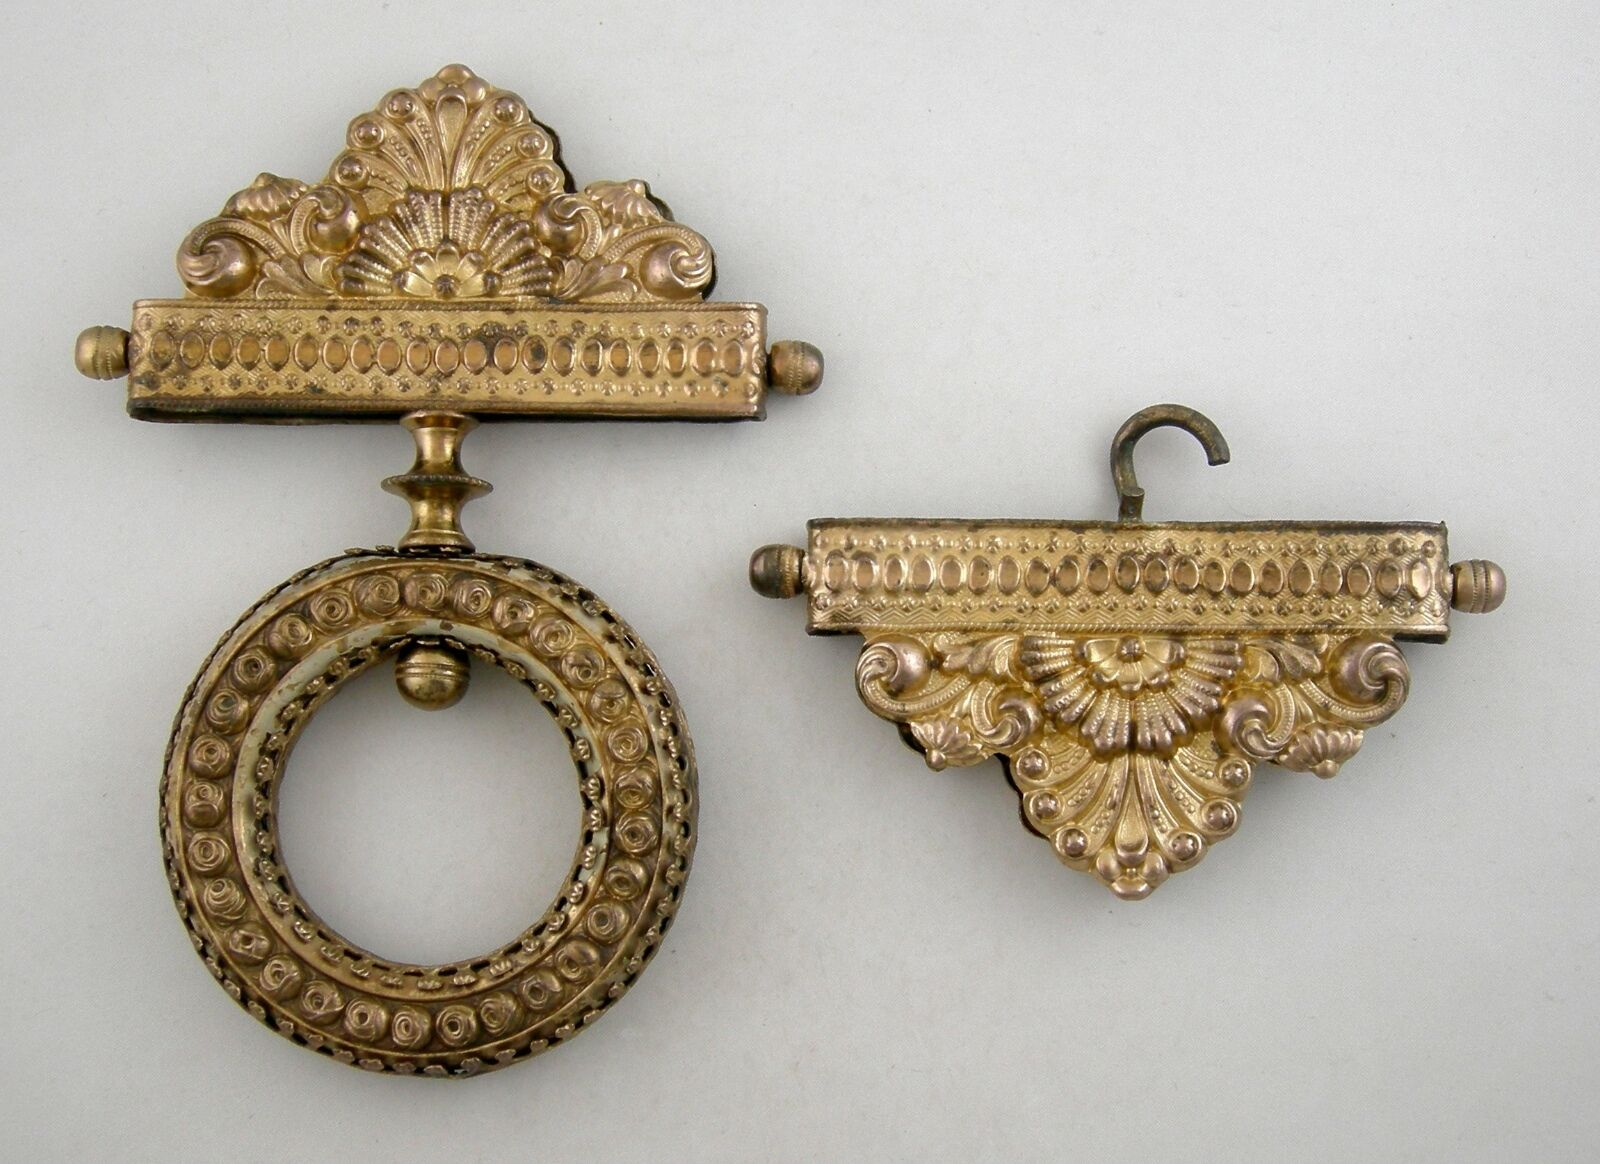 Antique bronze/brass Bell pull hardware with Dore finish (Ca.1880-1900)